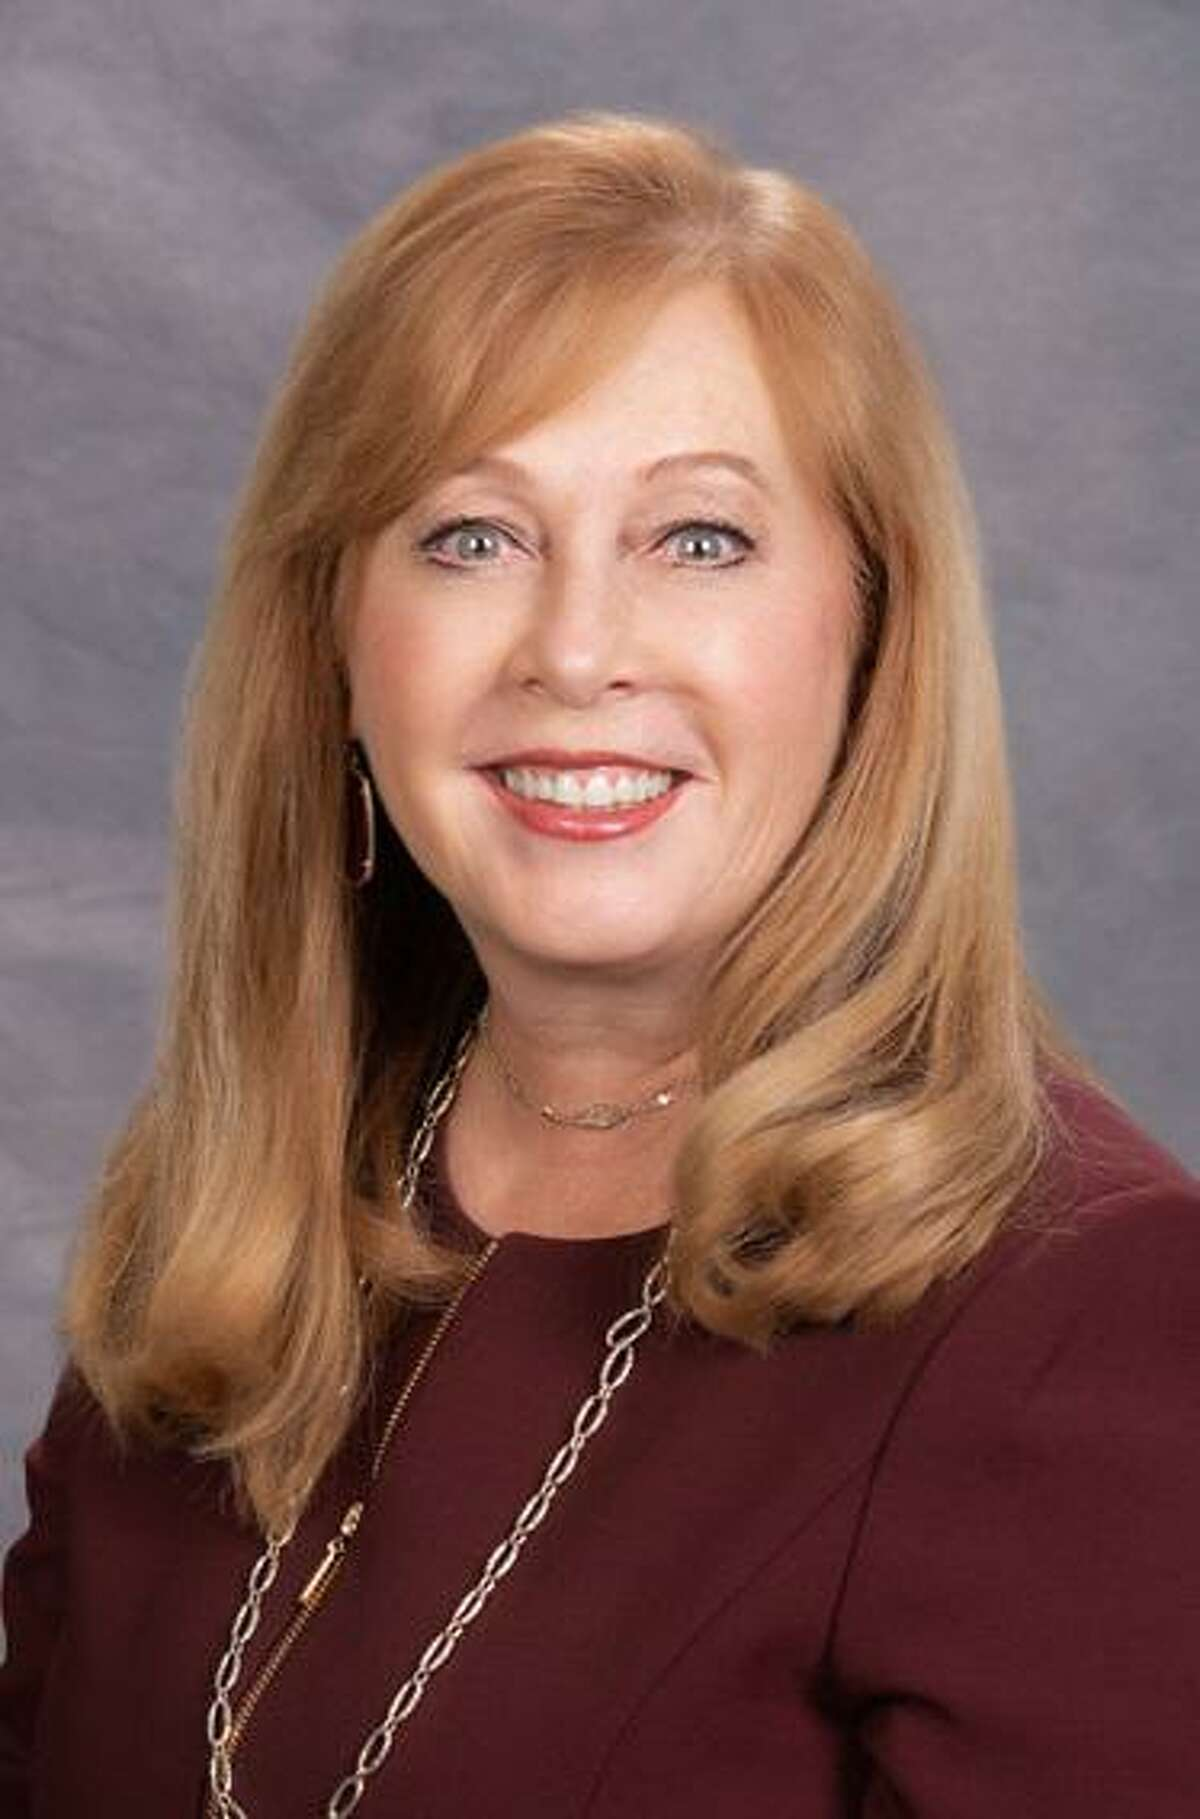 Christie Whitbeck, current superintendent of Bryan ISD, was named the lone finalist for the superintendent of Fort Bend ISD after a special meeting of the board of trustees on Thursday, Aug. 26, 2021.